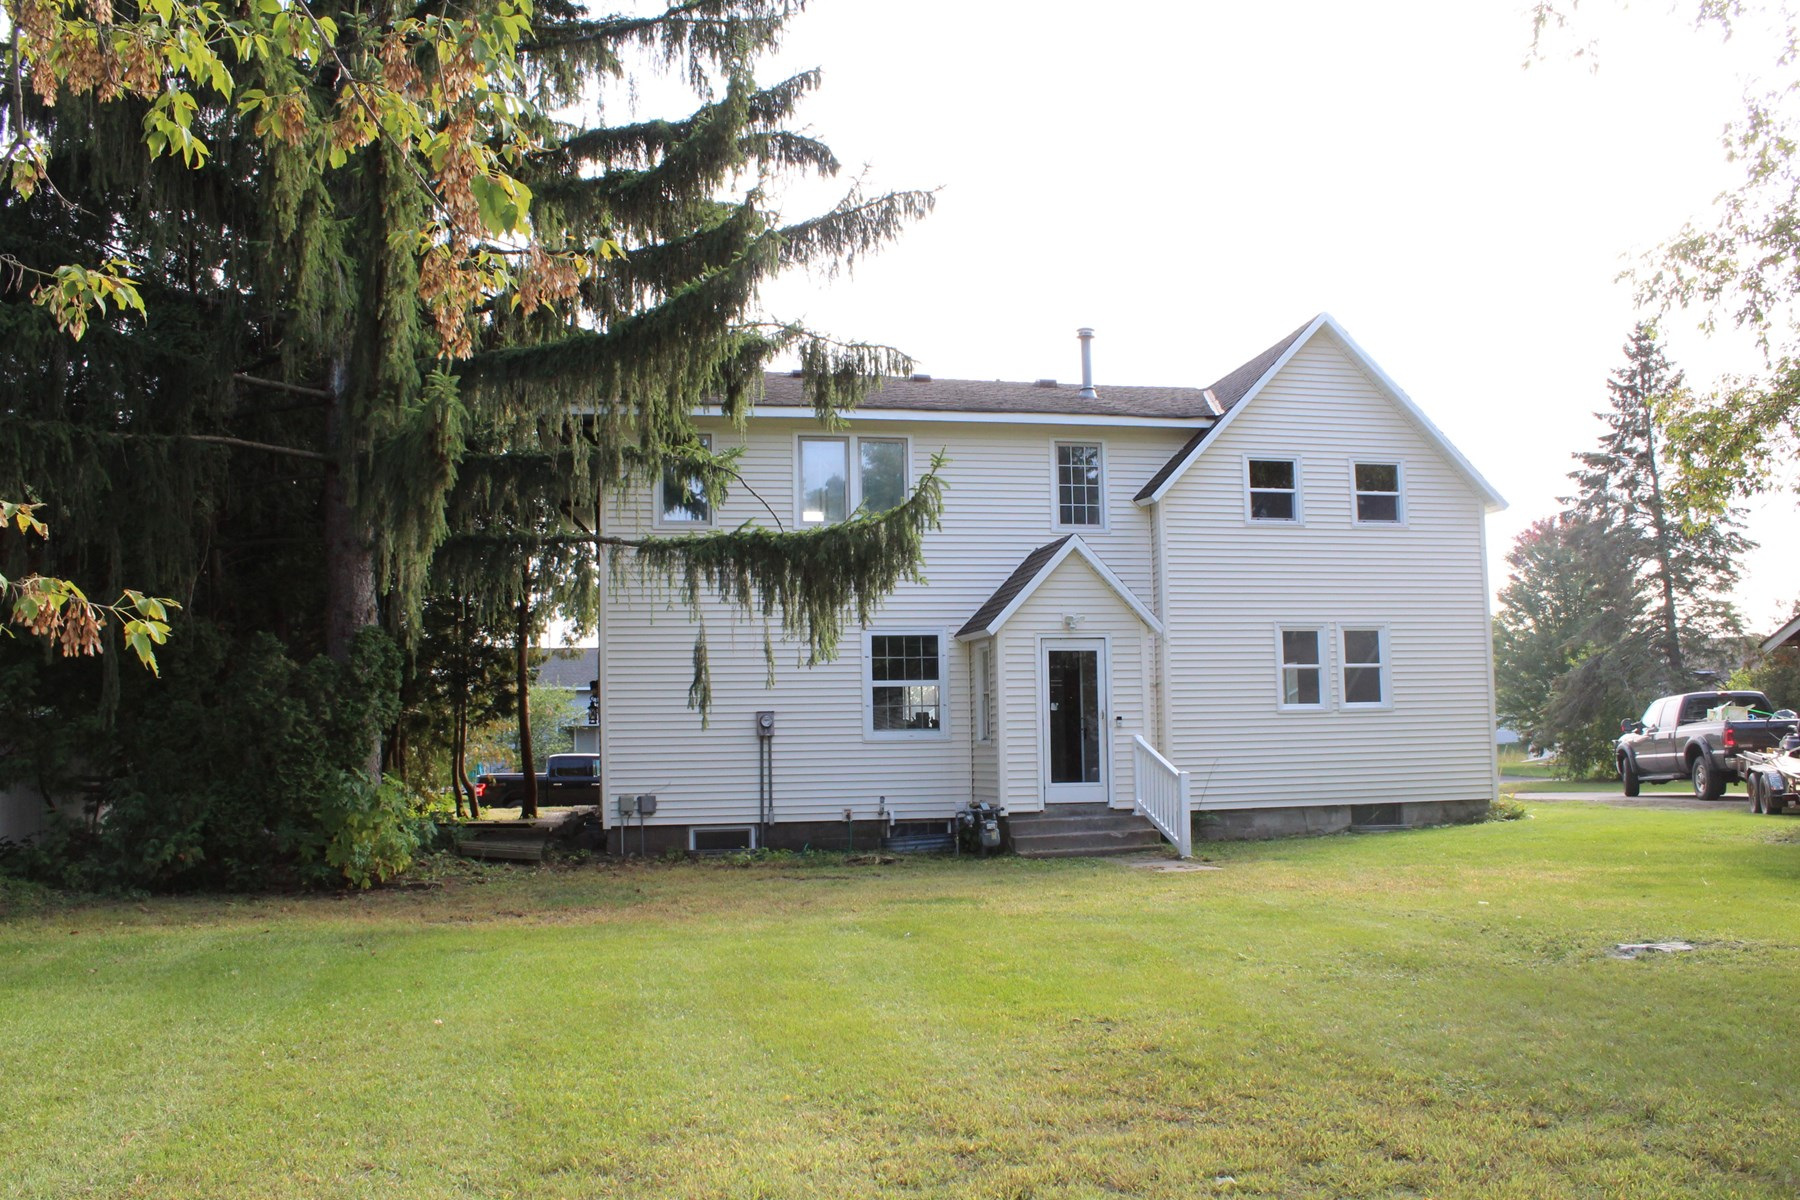 3BR Home in town of Princeton with large yard!